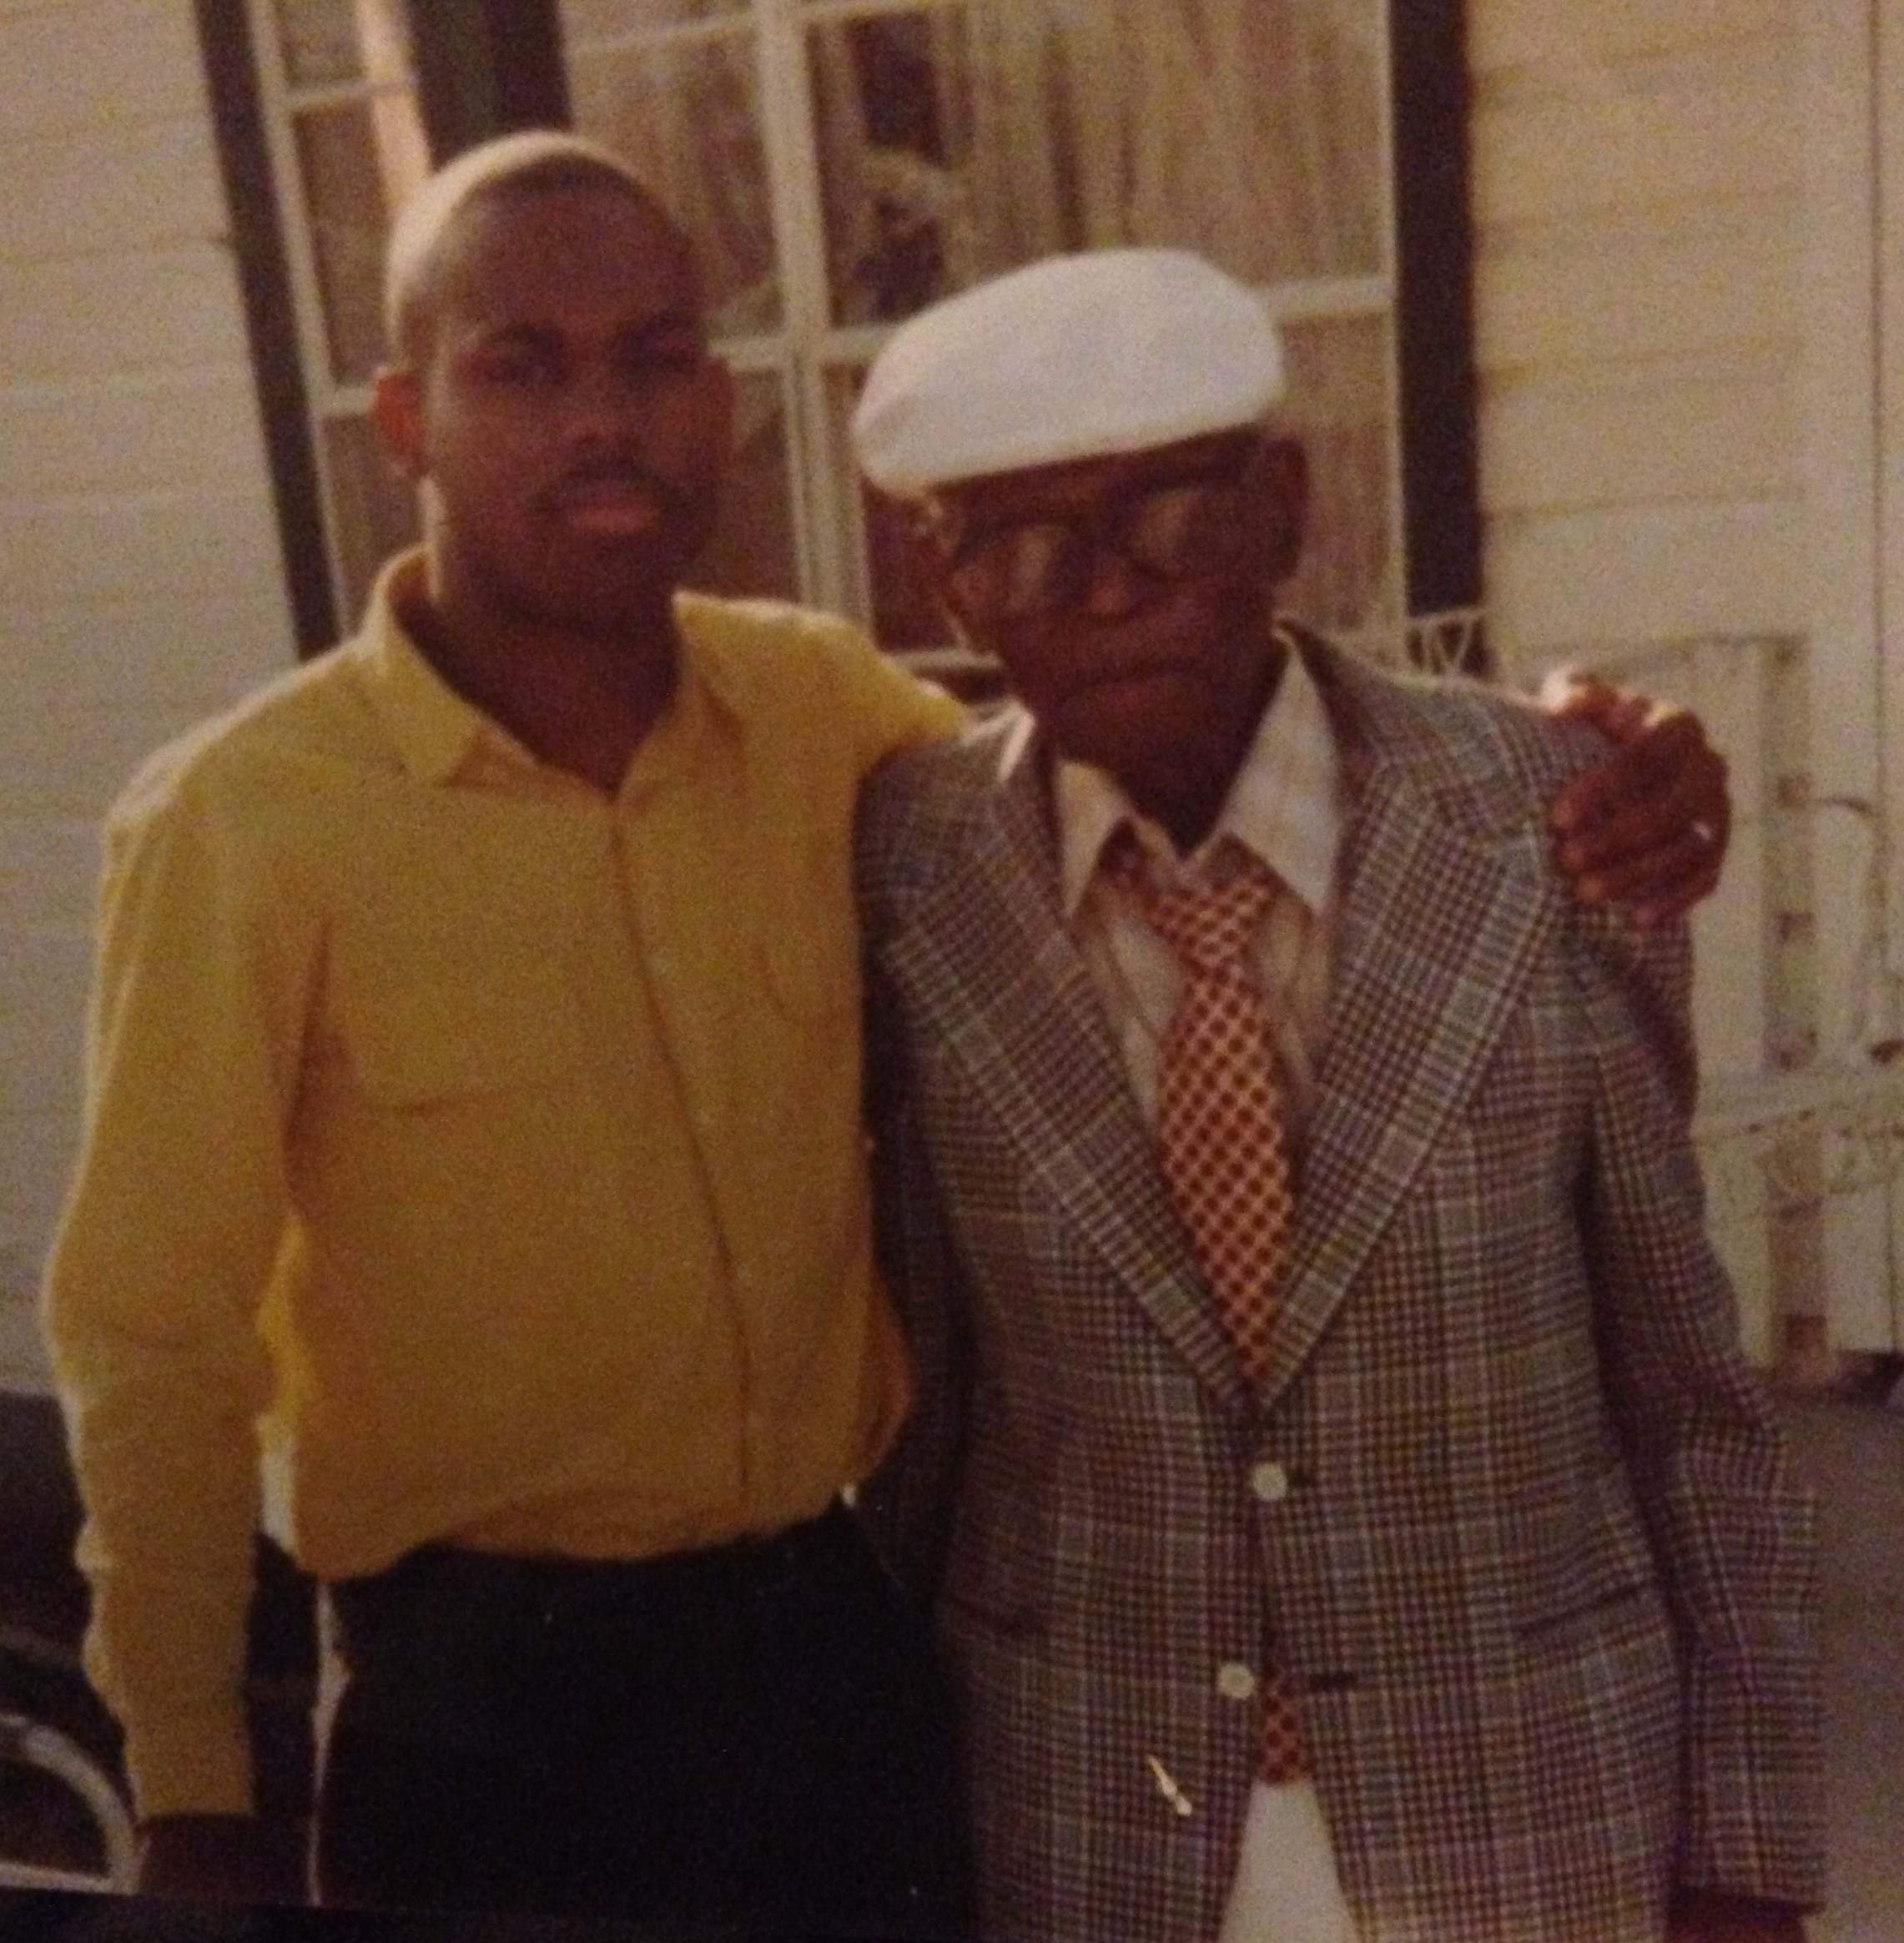 Me & Pop Bennie, The Son-N-Law to Papa Turner